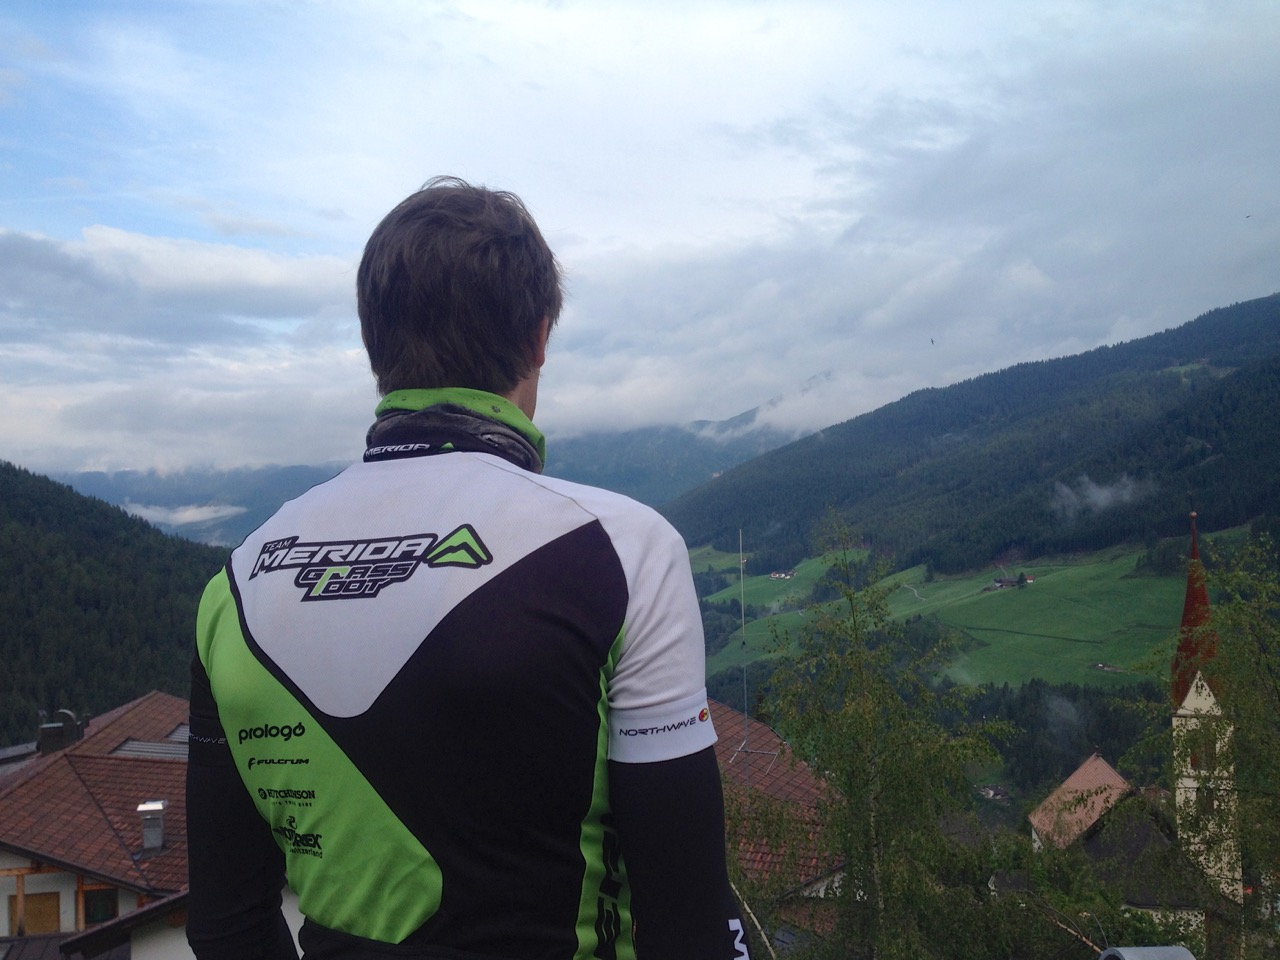 Before another Transalp stage in Sarental